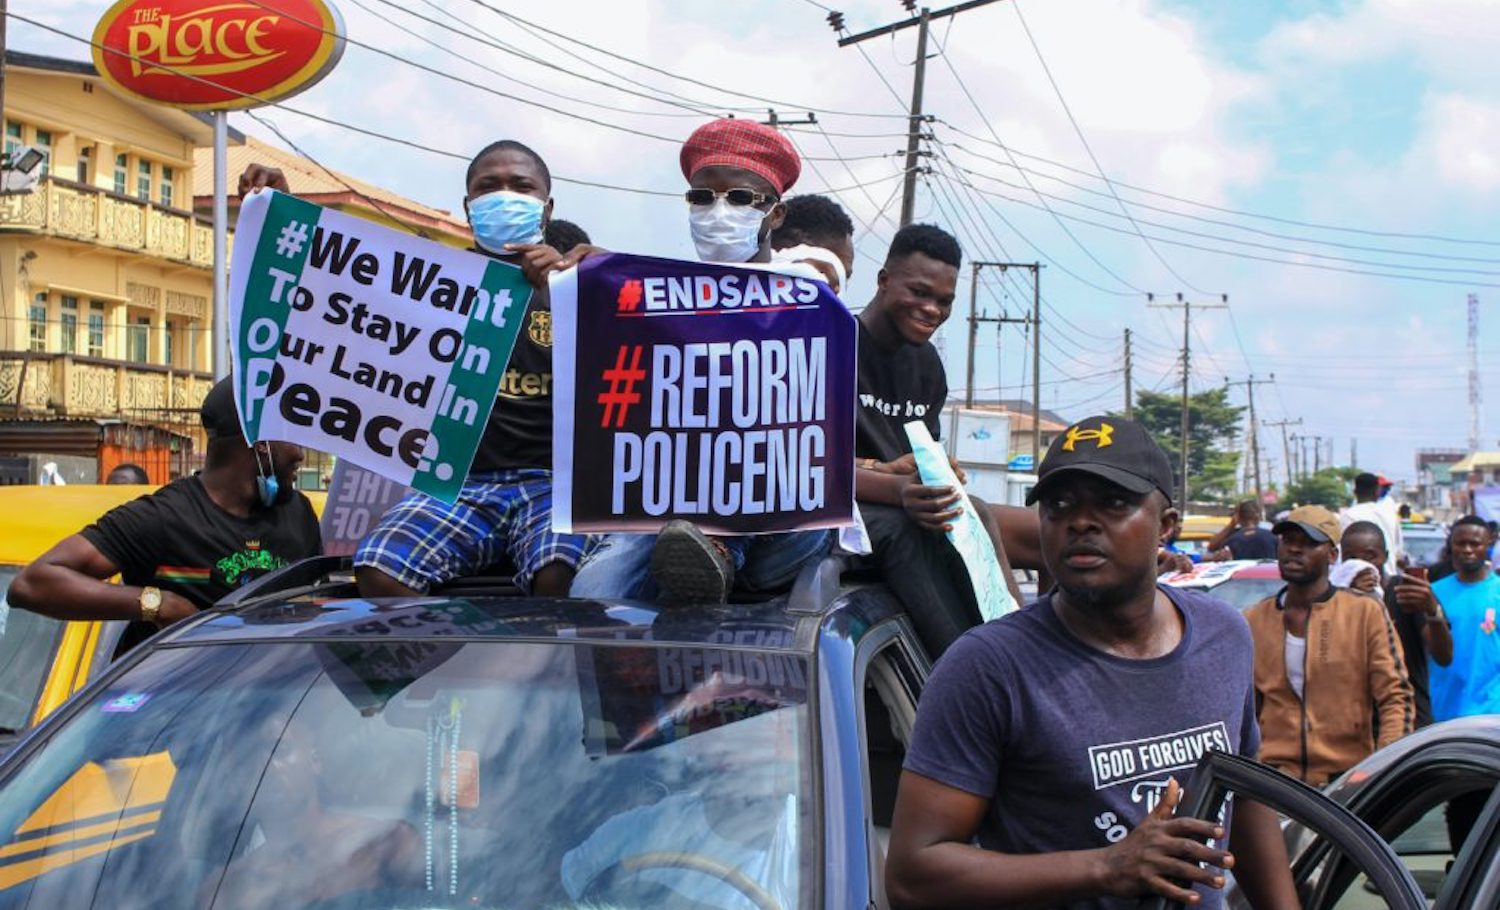 Supporting Nigeria Amid Protests: 5 Organizations to Know About